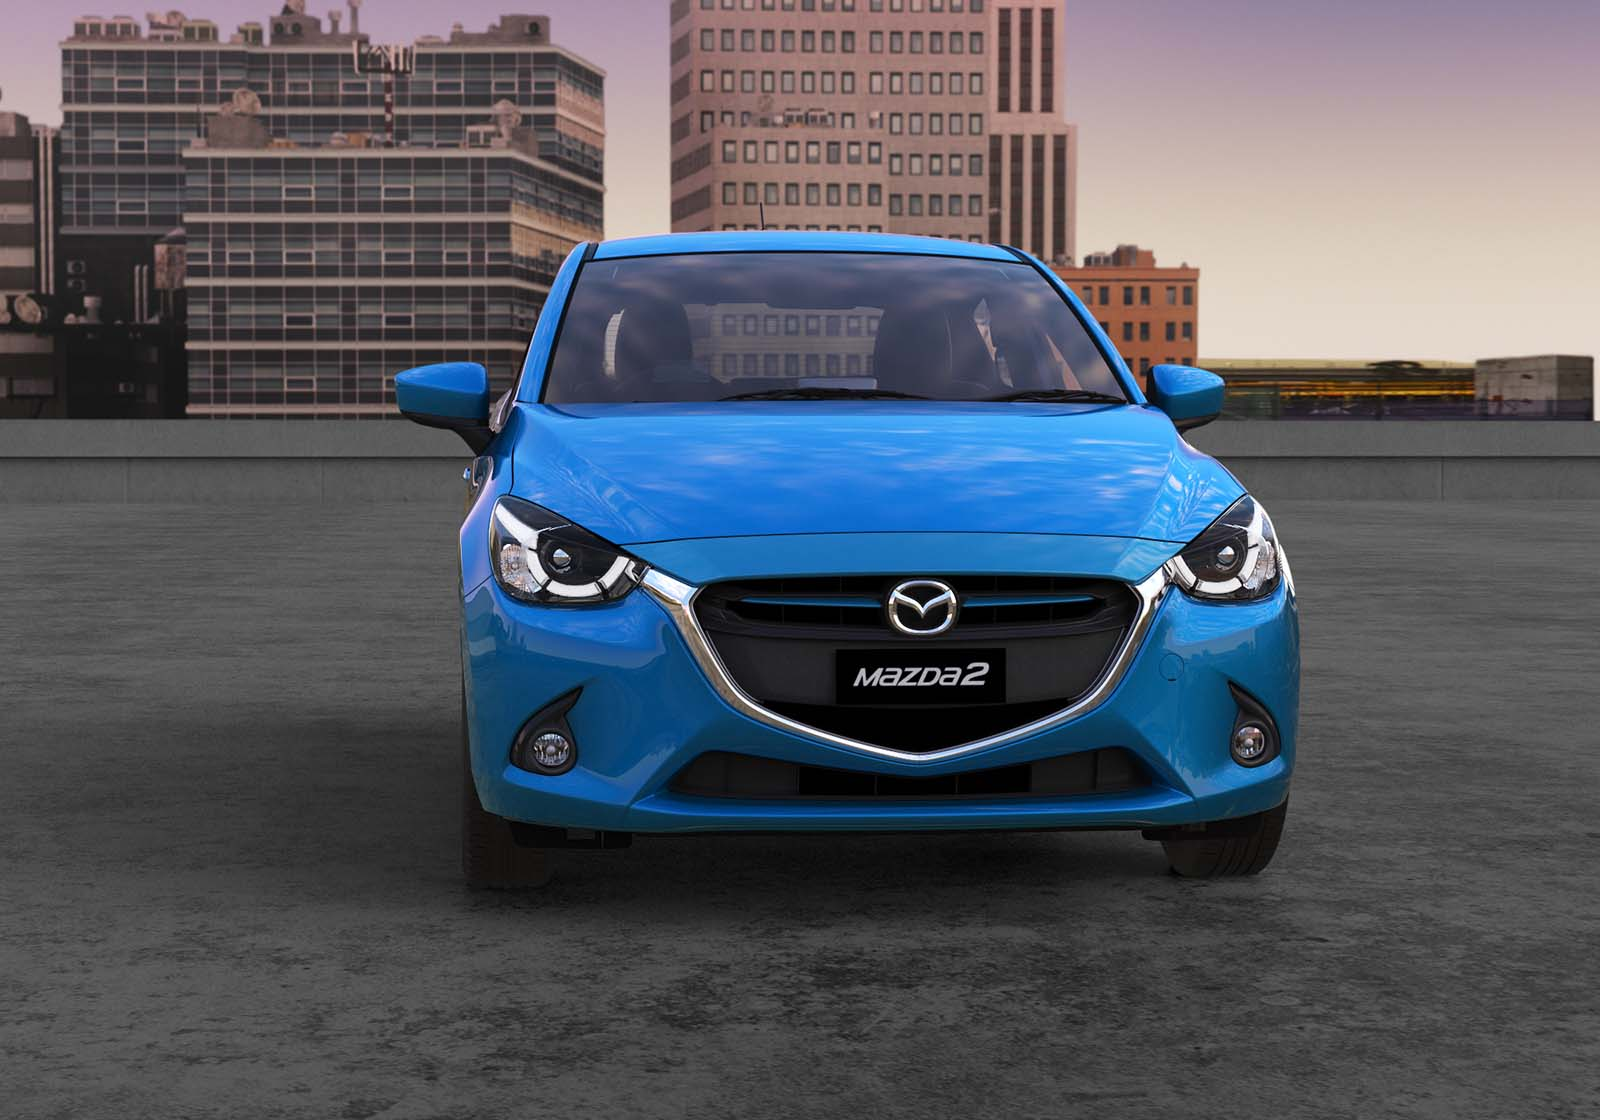 65 Gallery of The Mazda 2 2019 Lebanon Specs And Review Performance and New Engine by The Mazda 2 2019 Lebanon Specs And Review